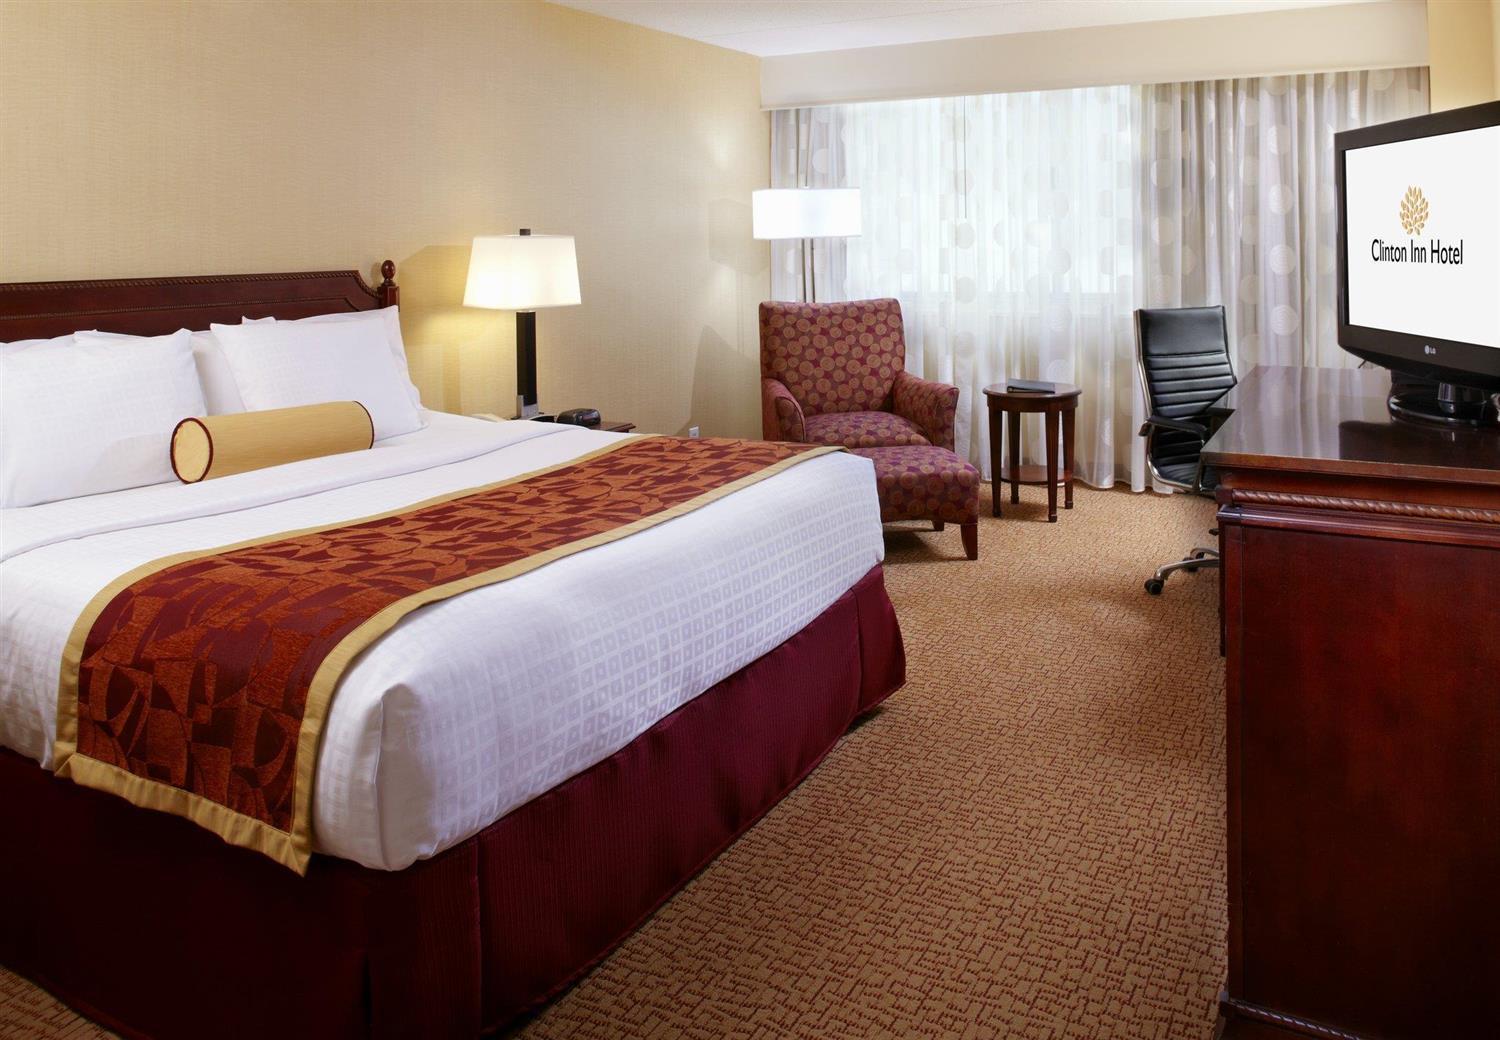 Room - Clinton Inn Hotel Tenafly